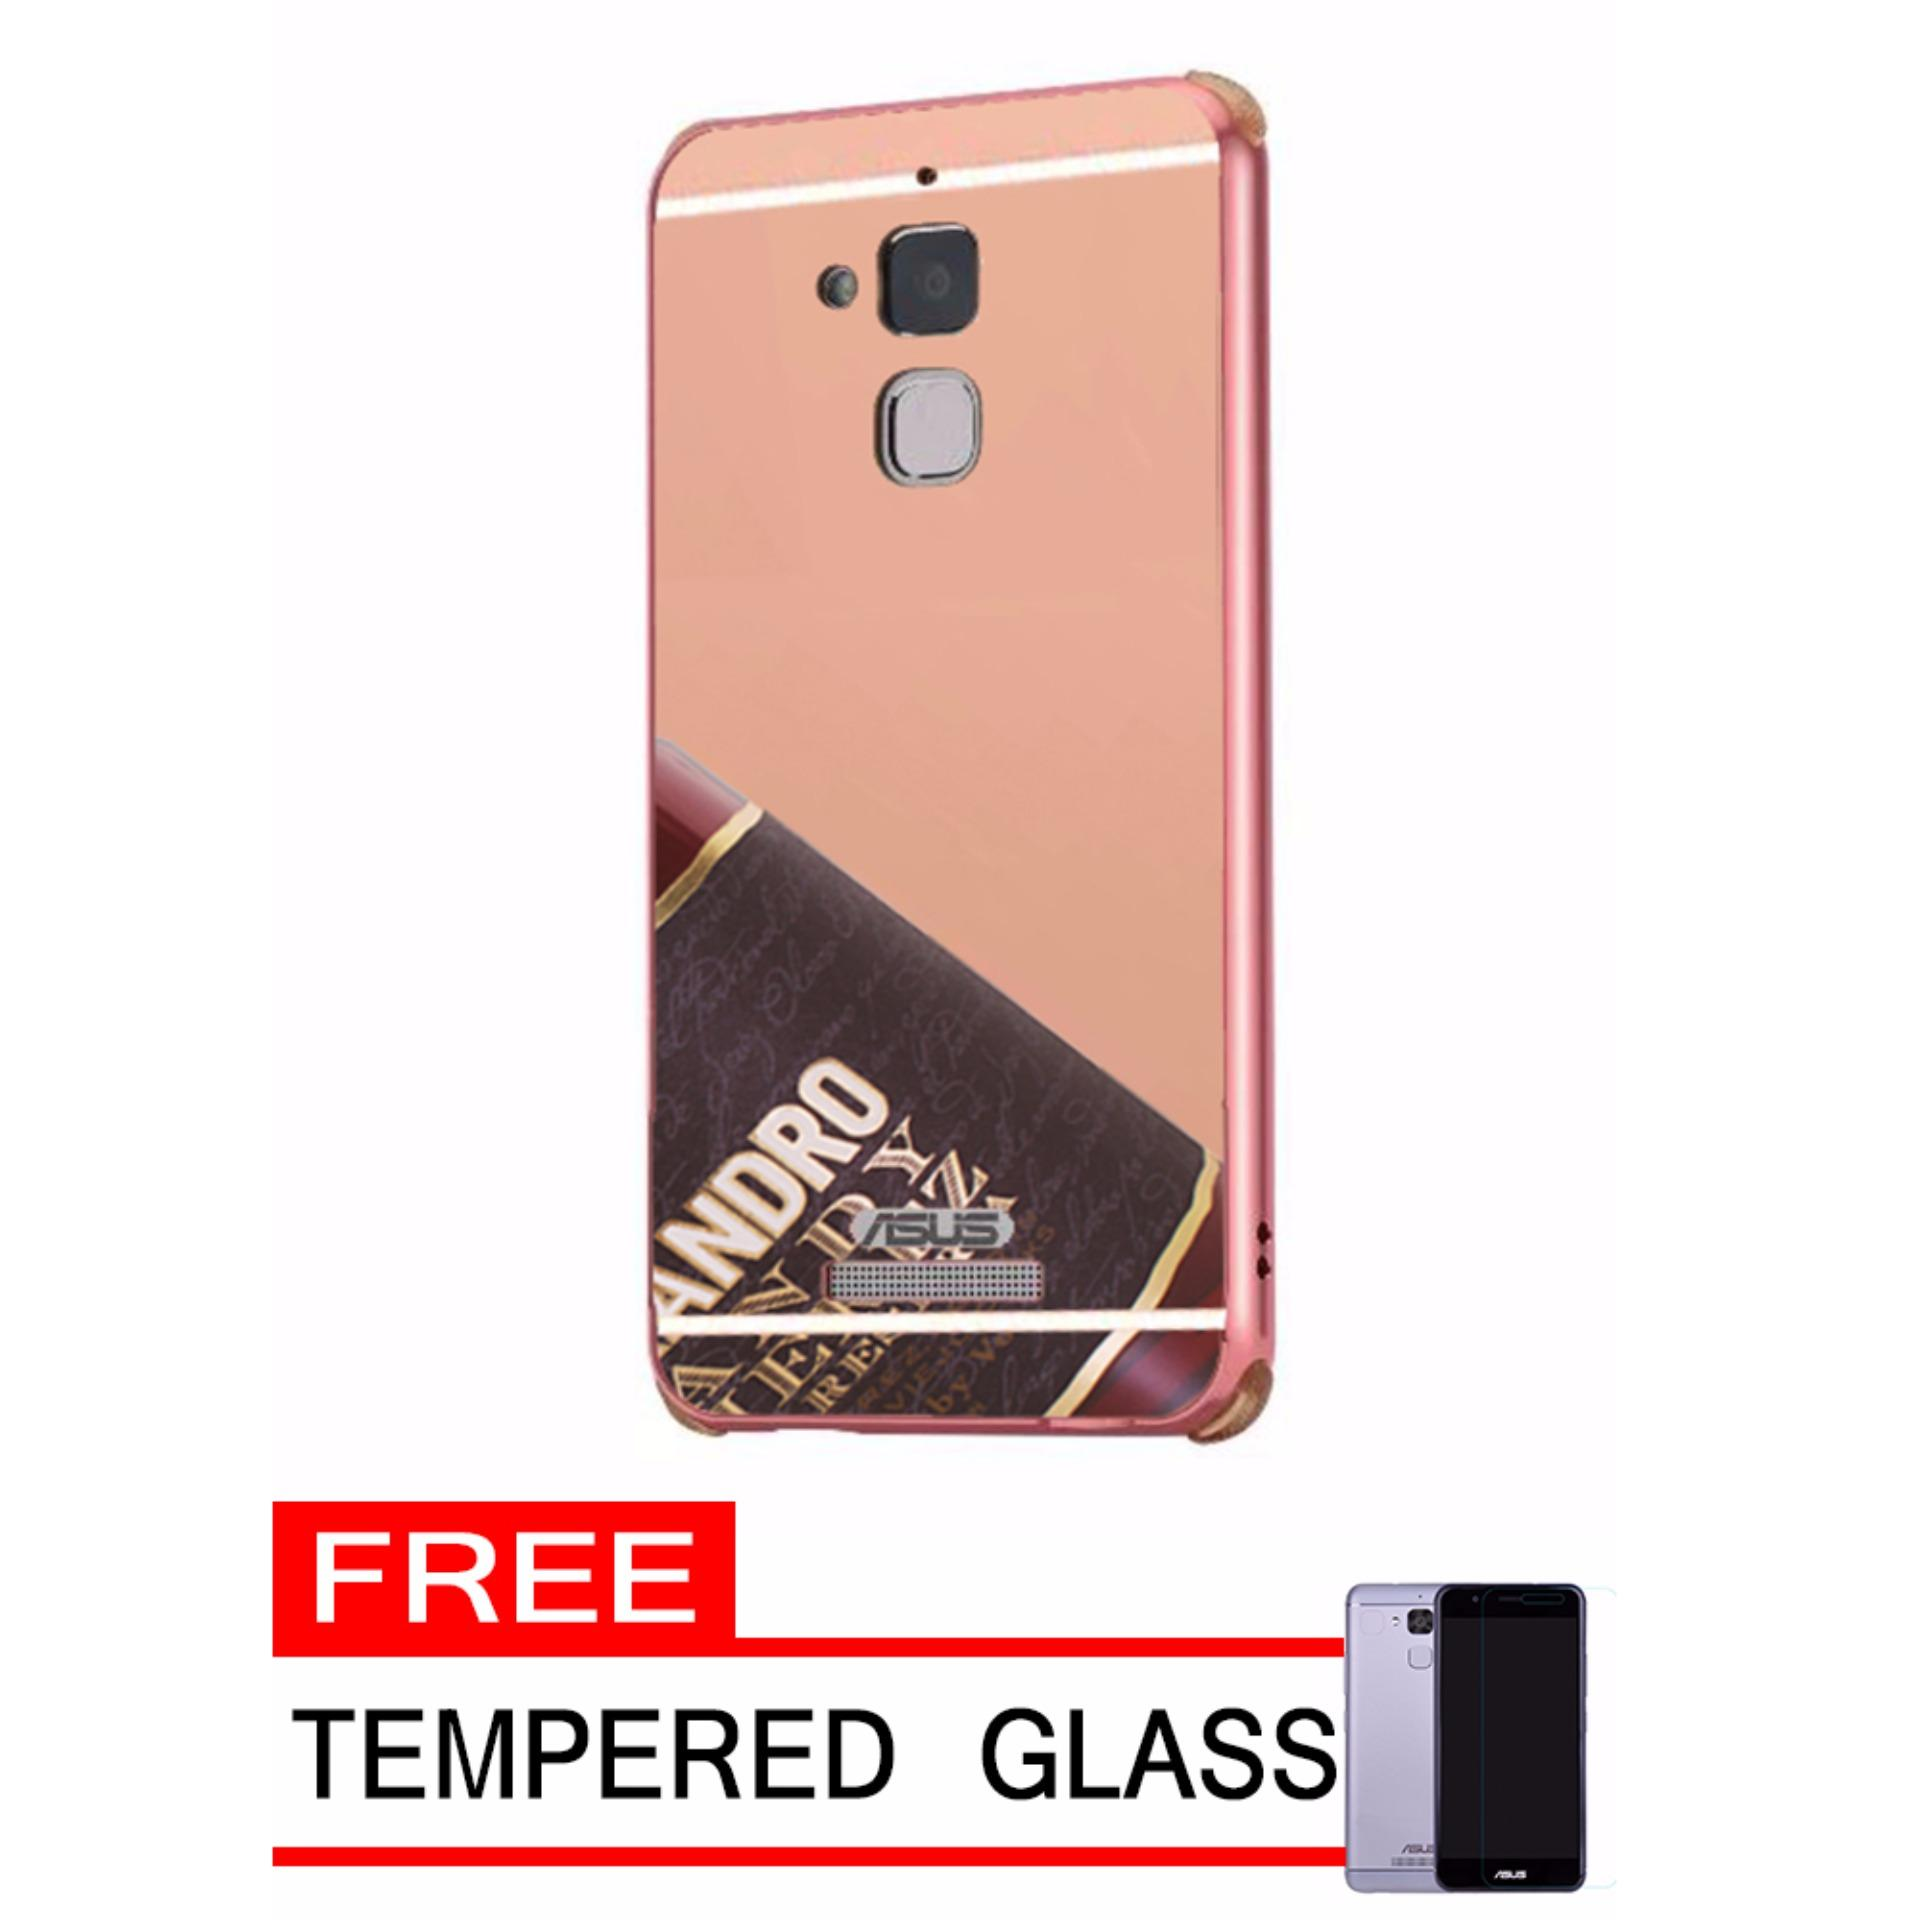 Daftar Harga Case Metal For Asus Zenfone 3 Max Zc520tl Aluminium Alumunium Bumper 2 55 With Mirror Backdoor Slide Rose